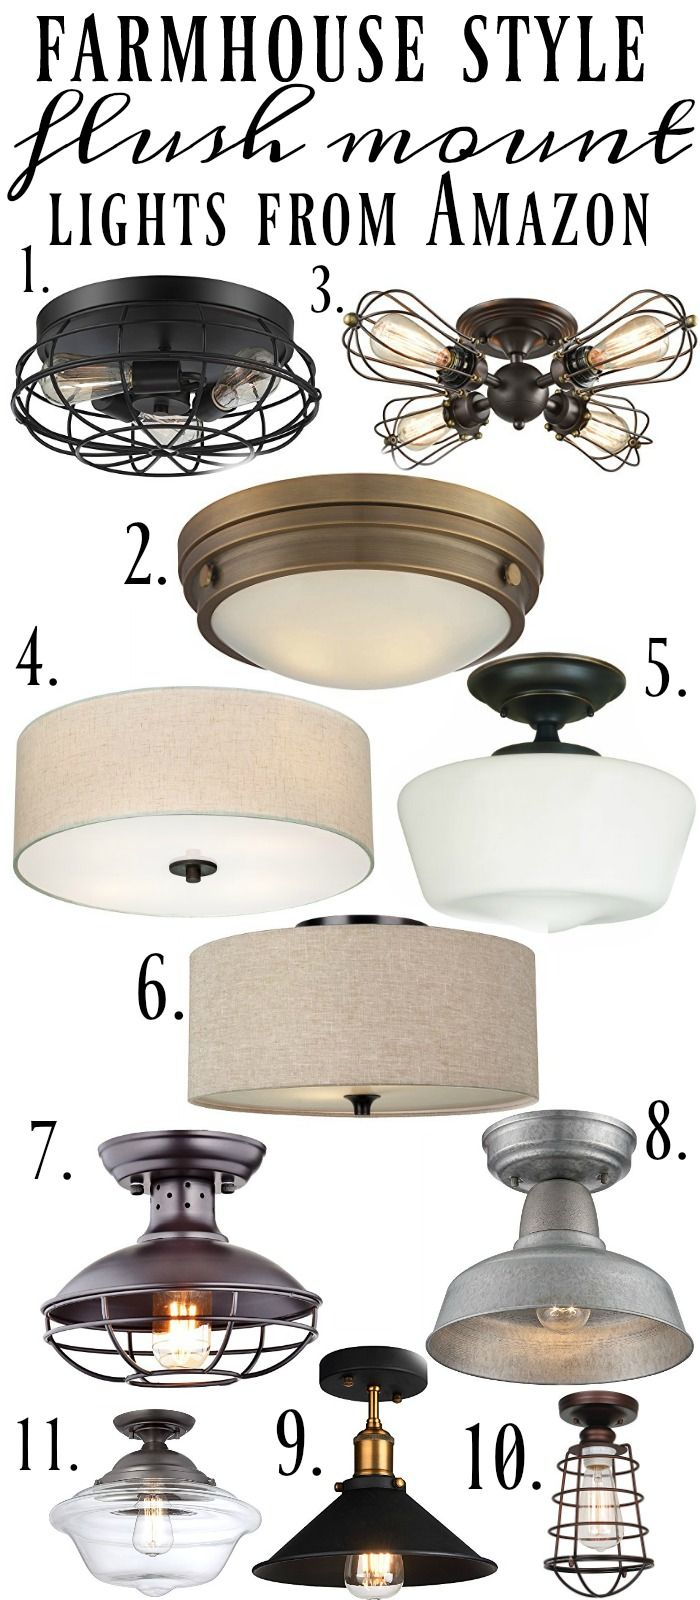 Farmhouse Flush Mount Lights Farmhouse Light Fixtures Farmhouse Style Lighting Farmhouse Flush Mount Light